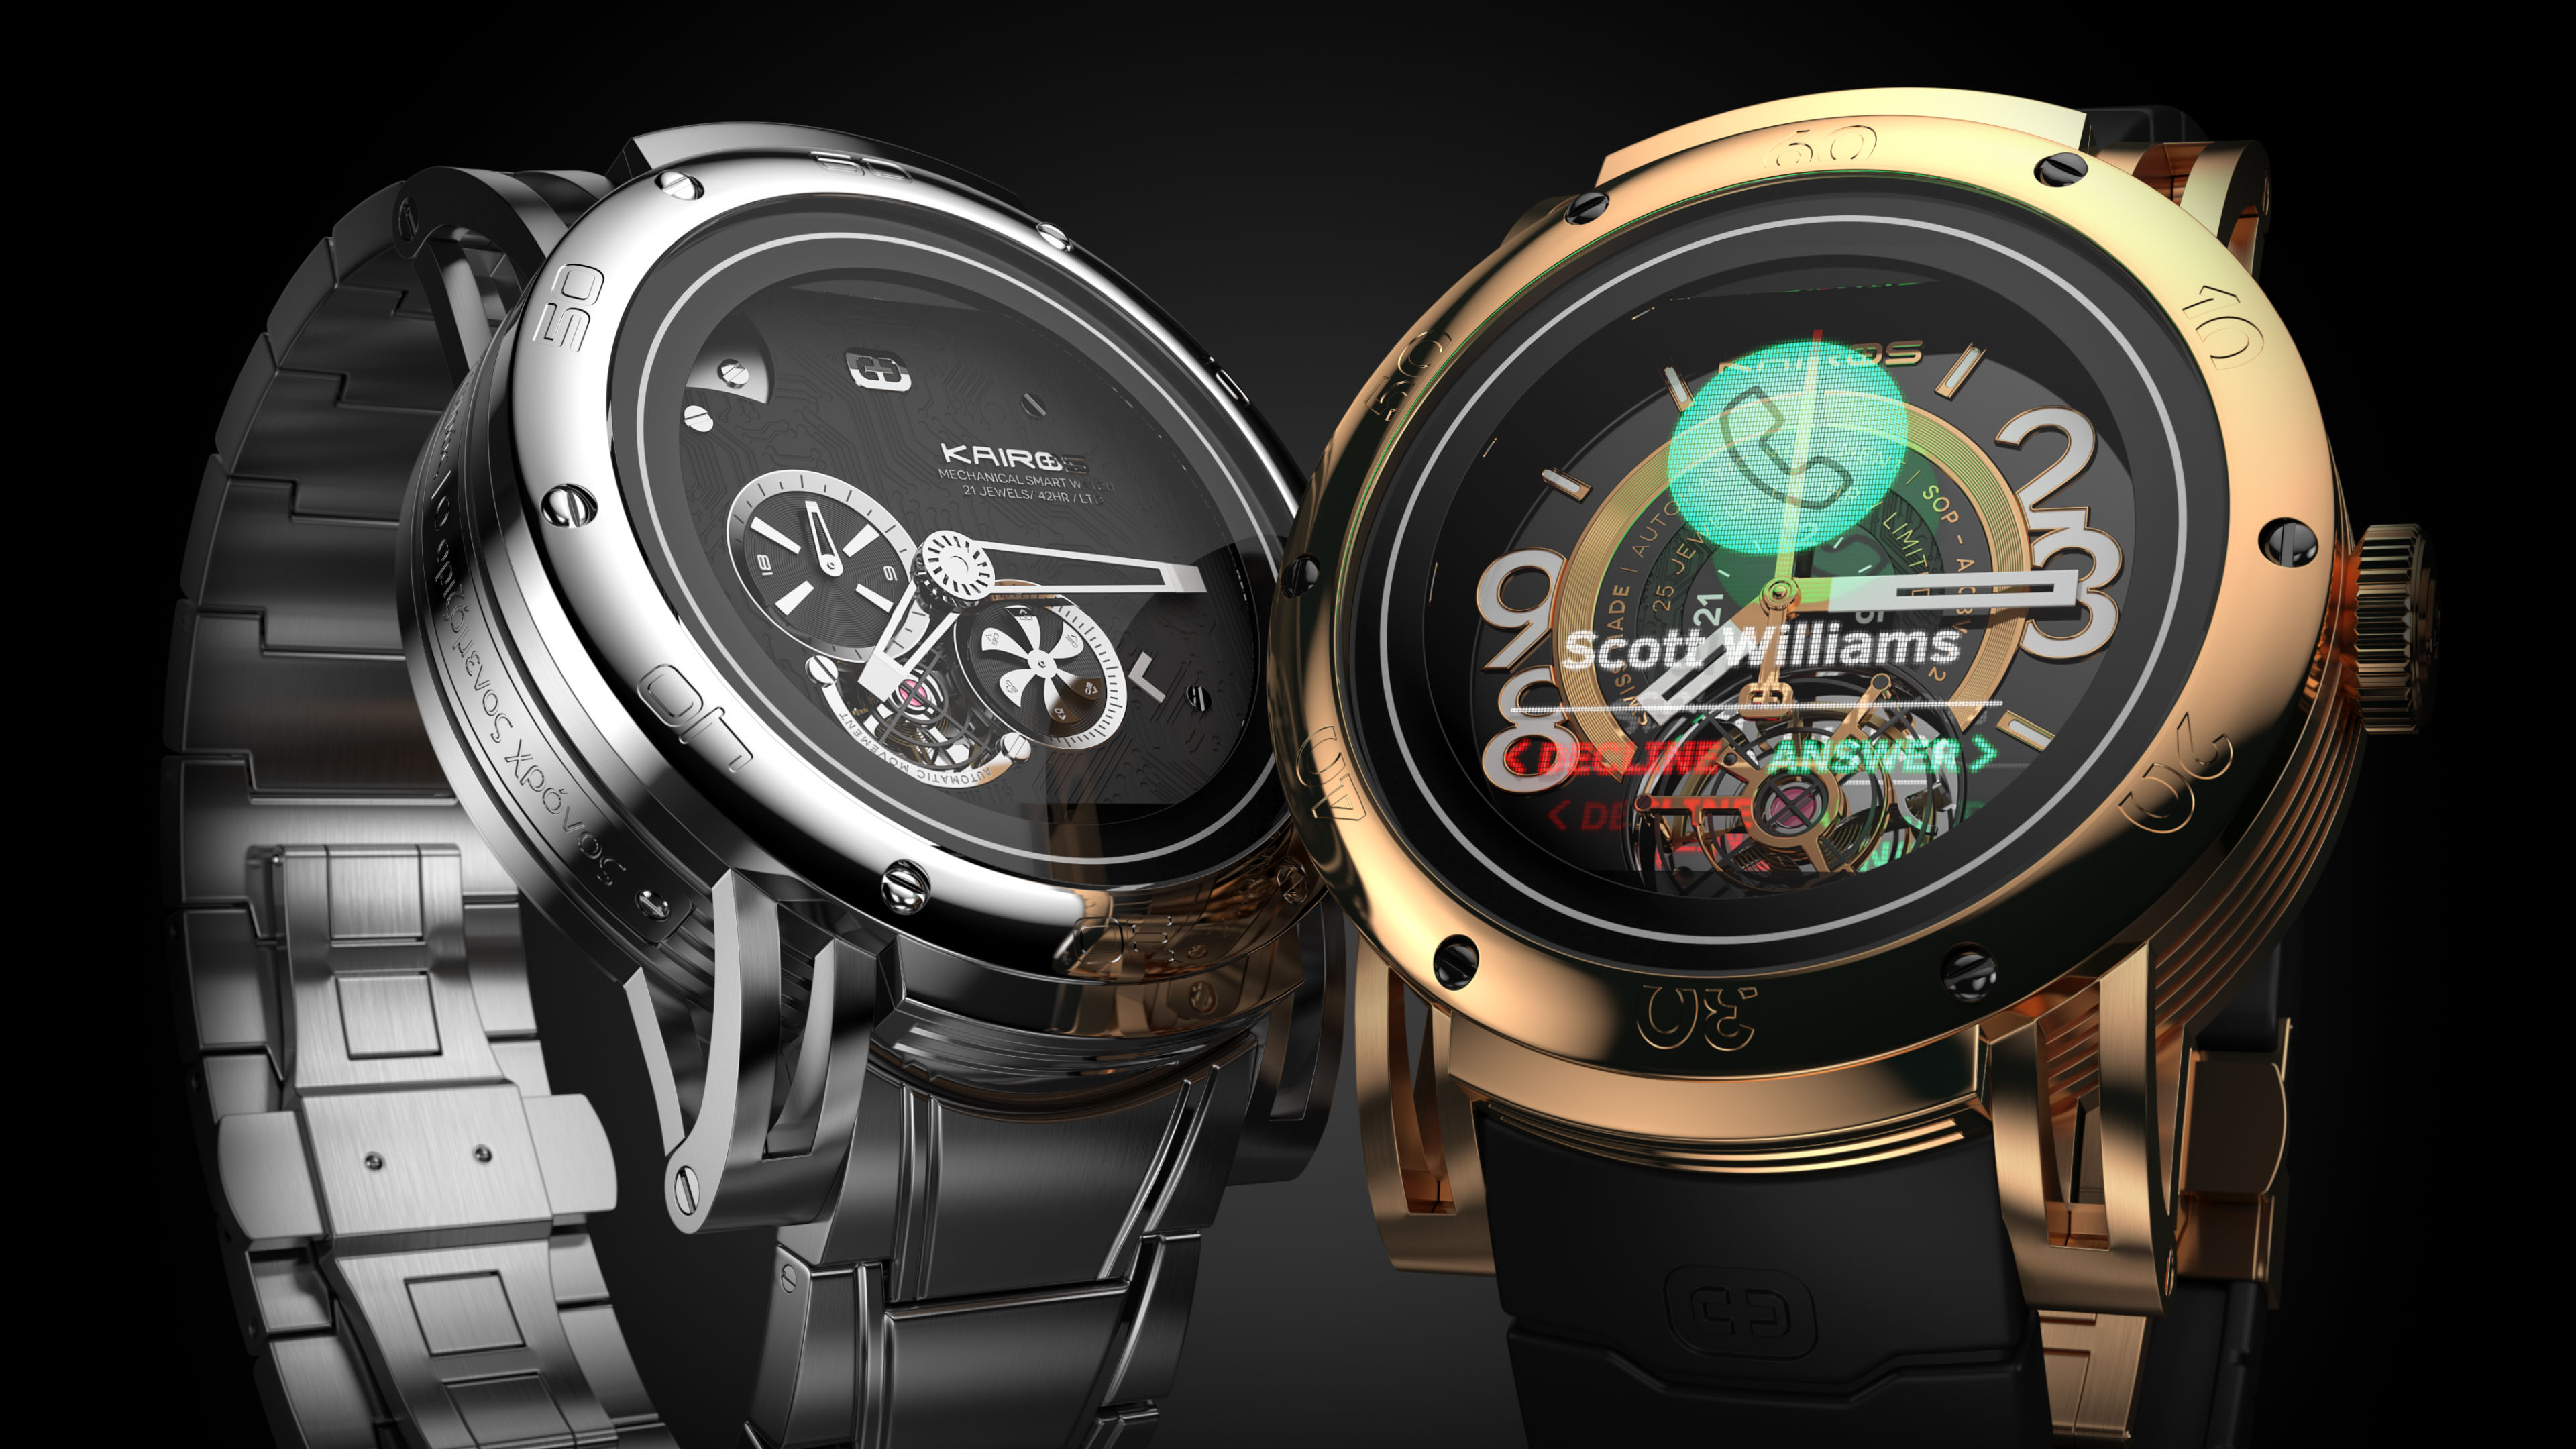 Kairos Hybrid Smart-Watch metal MSW and gold SSW rendering on black background